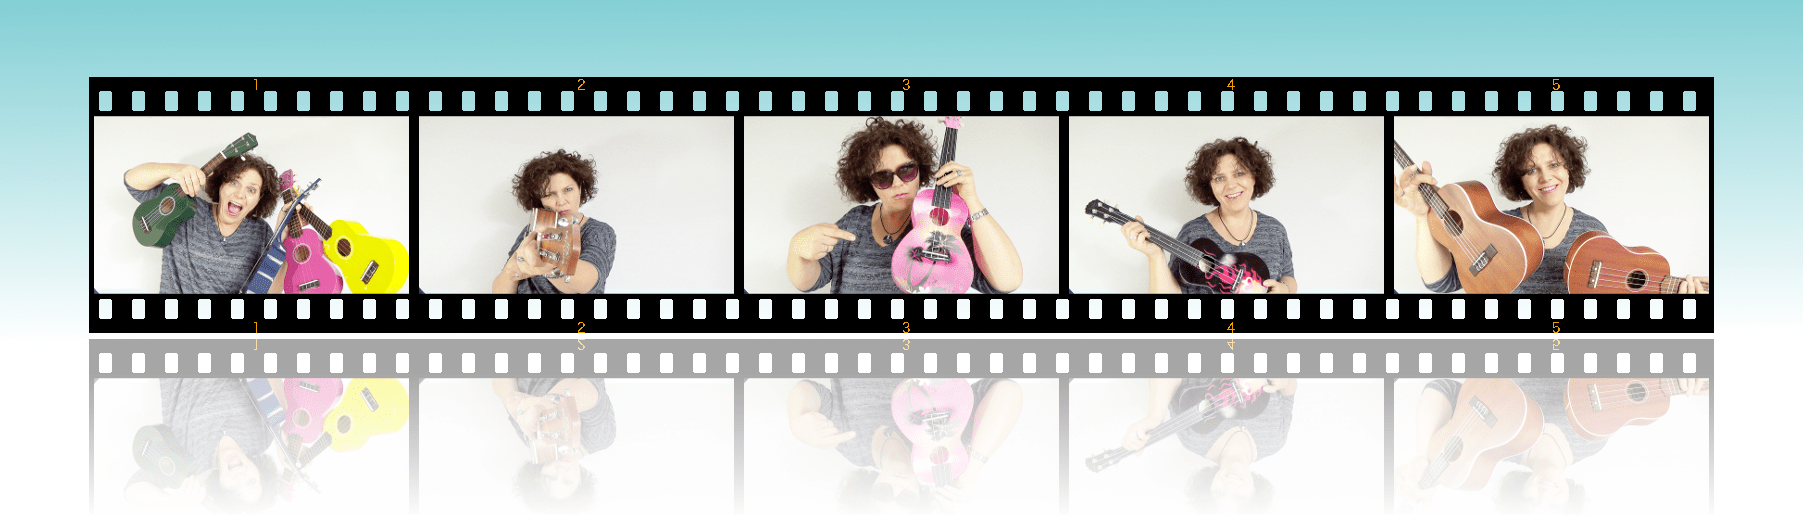 Ukelele4U Website Filmstrip